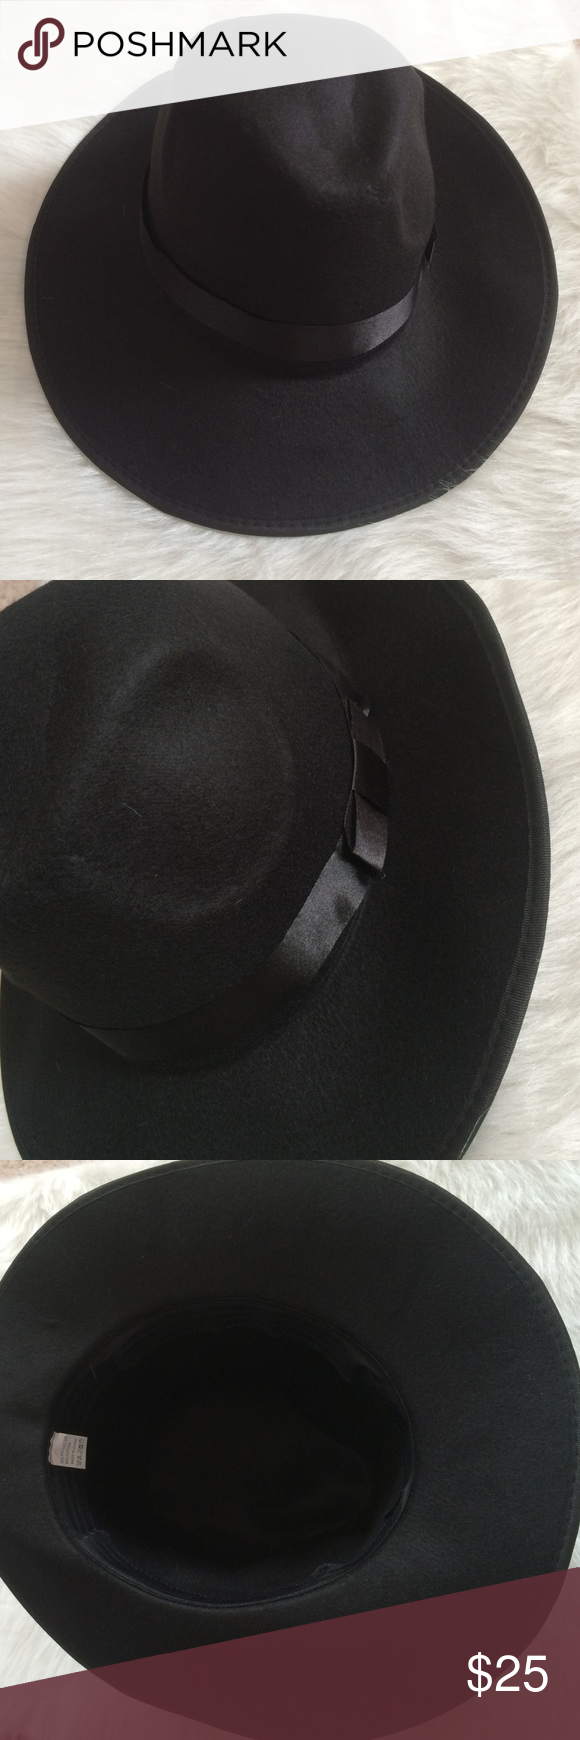 Black fall winter hat Brand new / no tags Restylish Accessories Hats